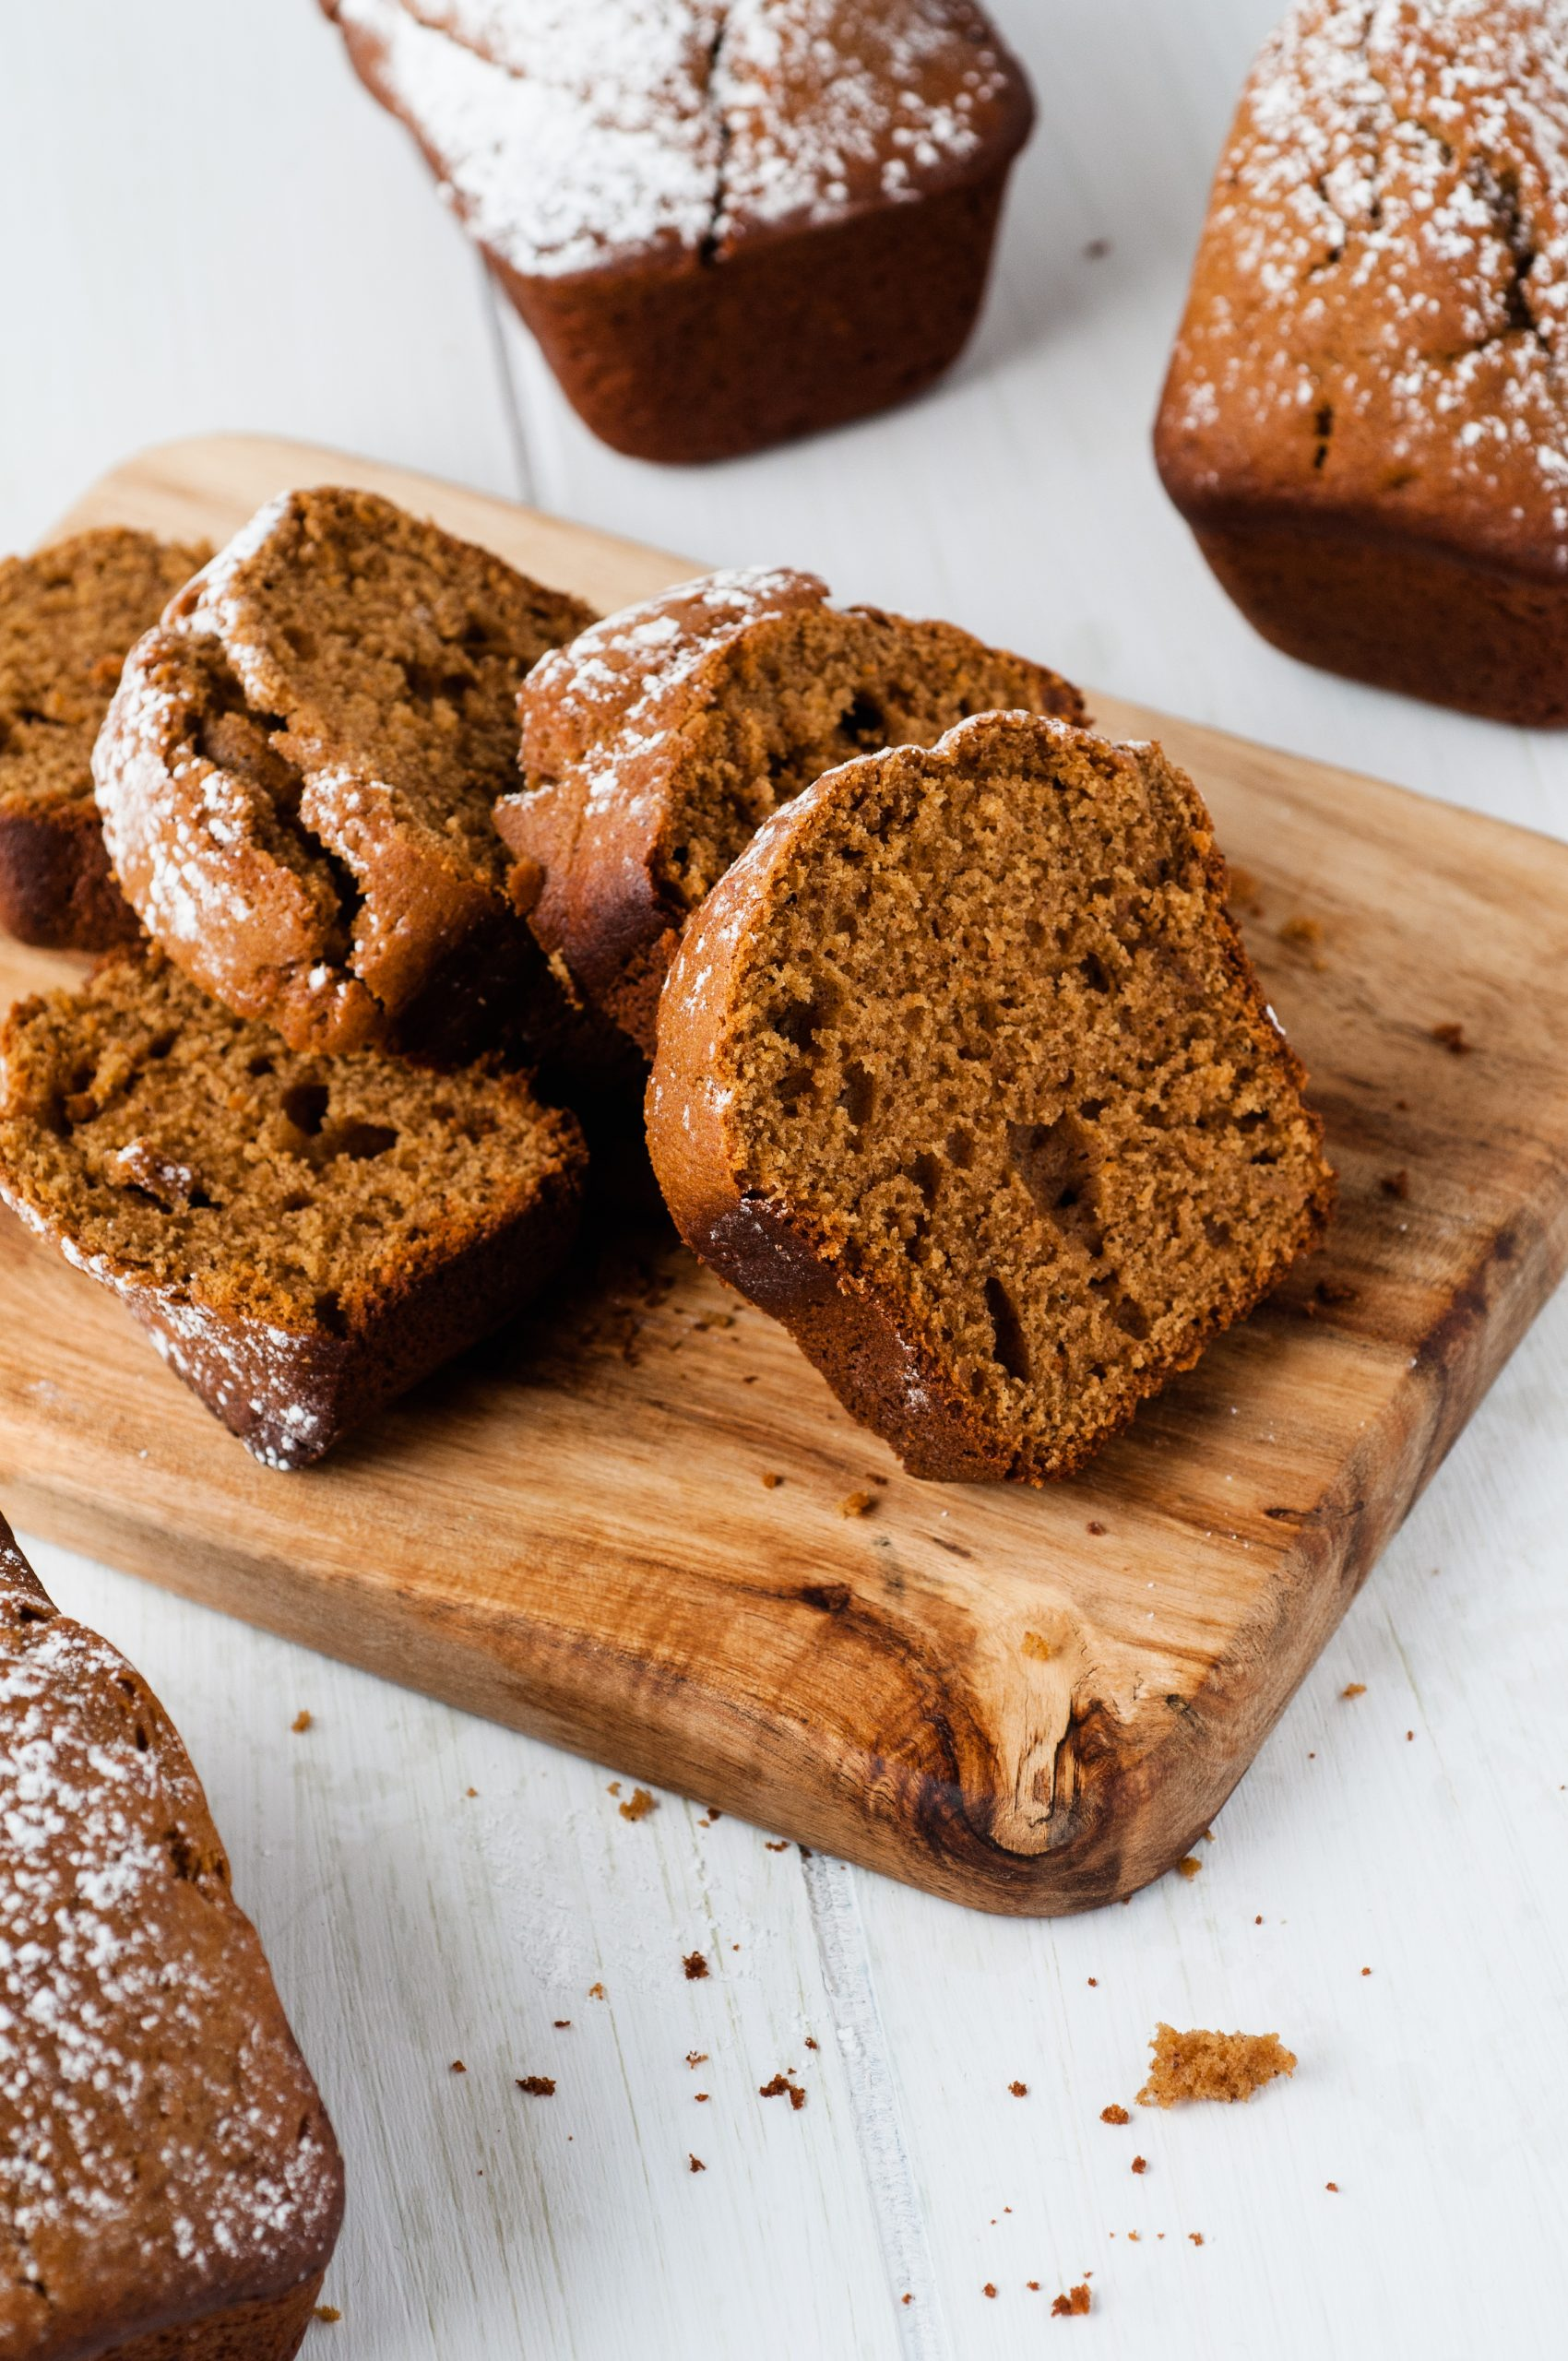 salvage recipe - instead of gingerbread houses that sit around and get tossed, why not make these adorable mini spiced gingerbread loaves. Great for gift giving, snacks, or holiday parties. Get the full recipe at salvagesisterandmister.com